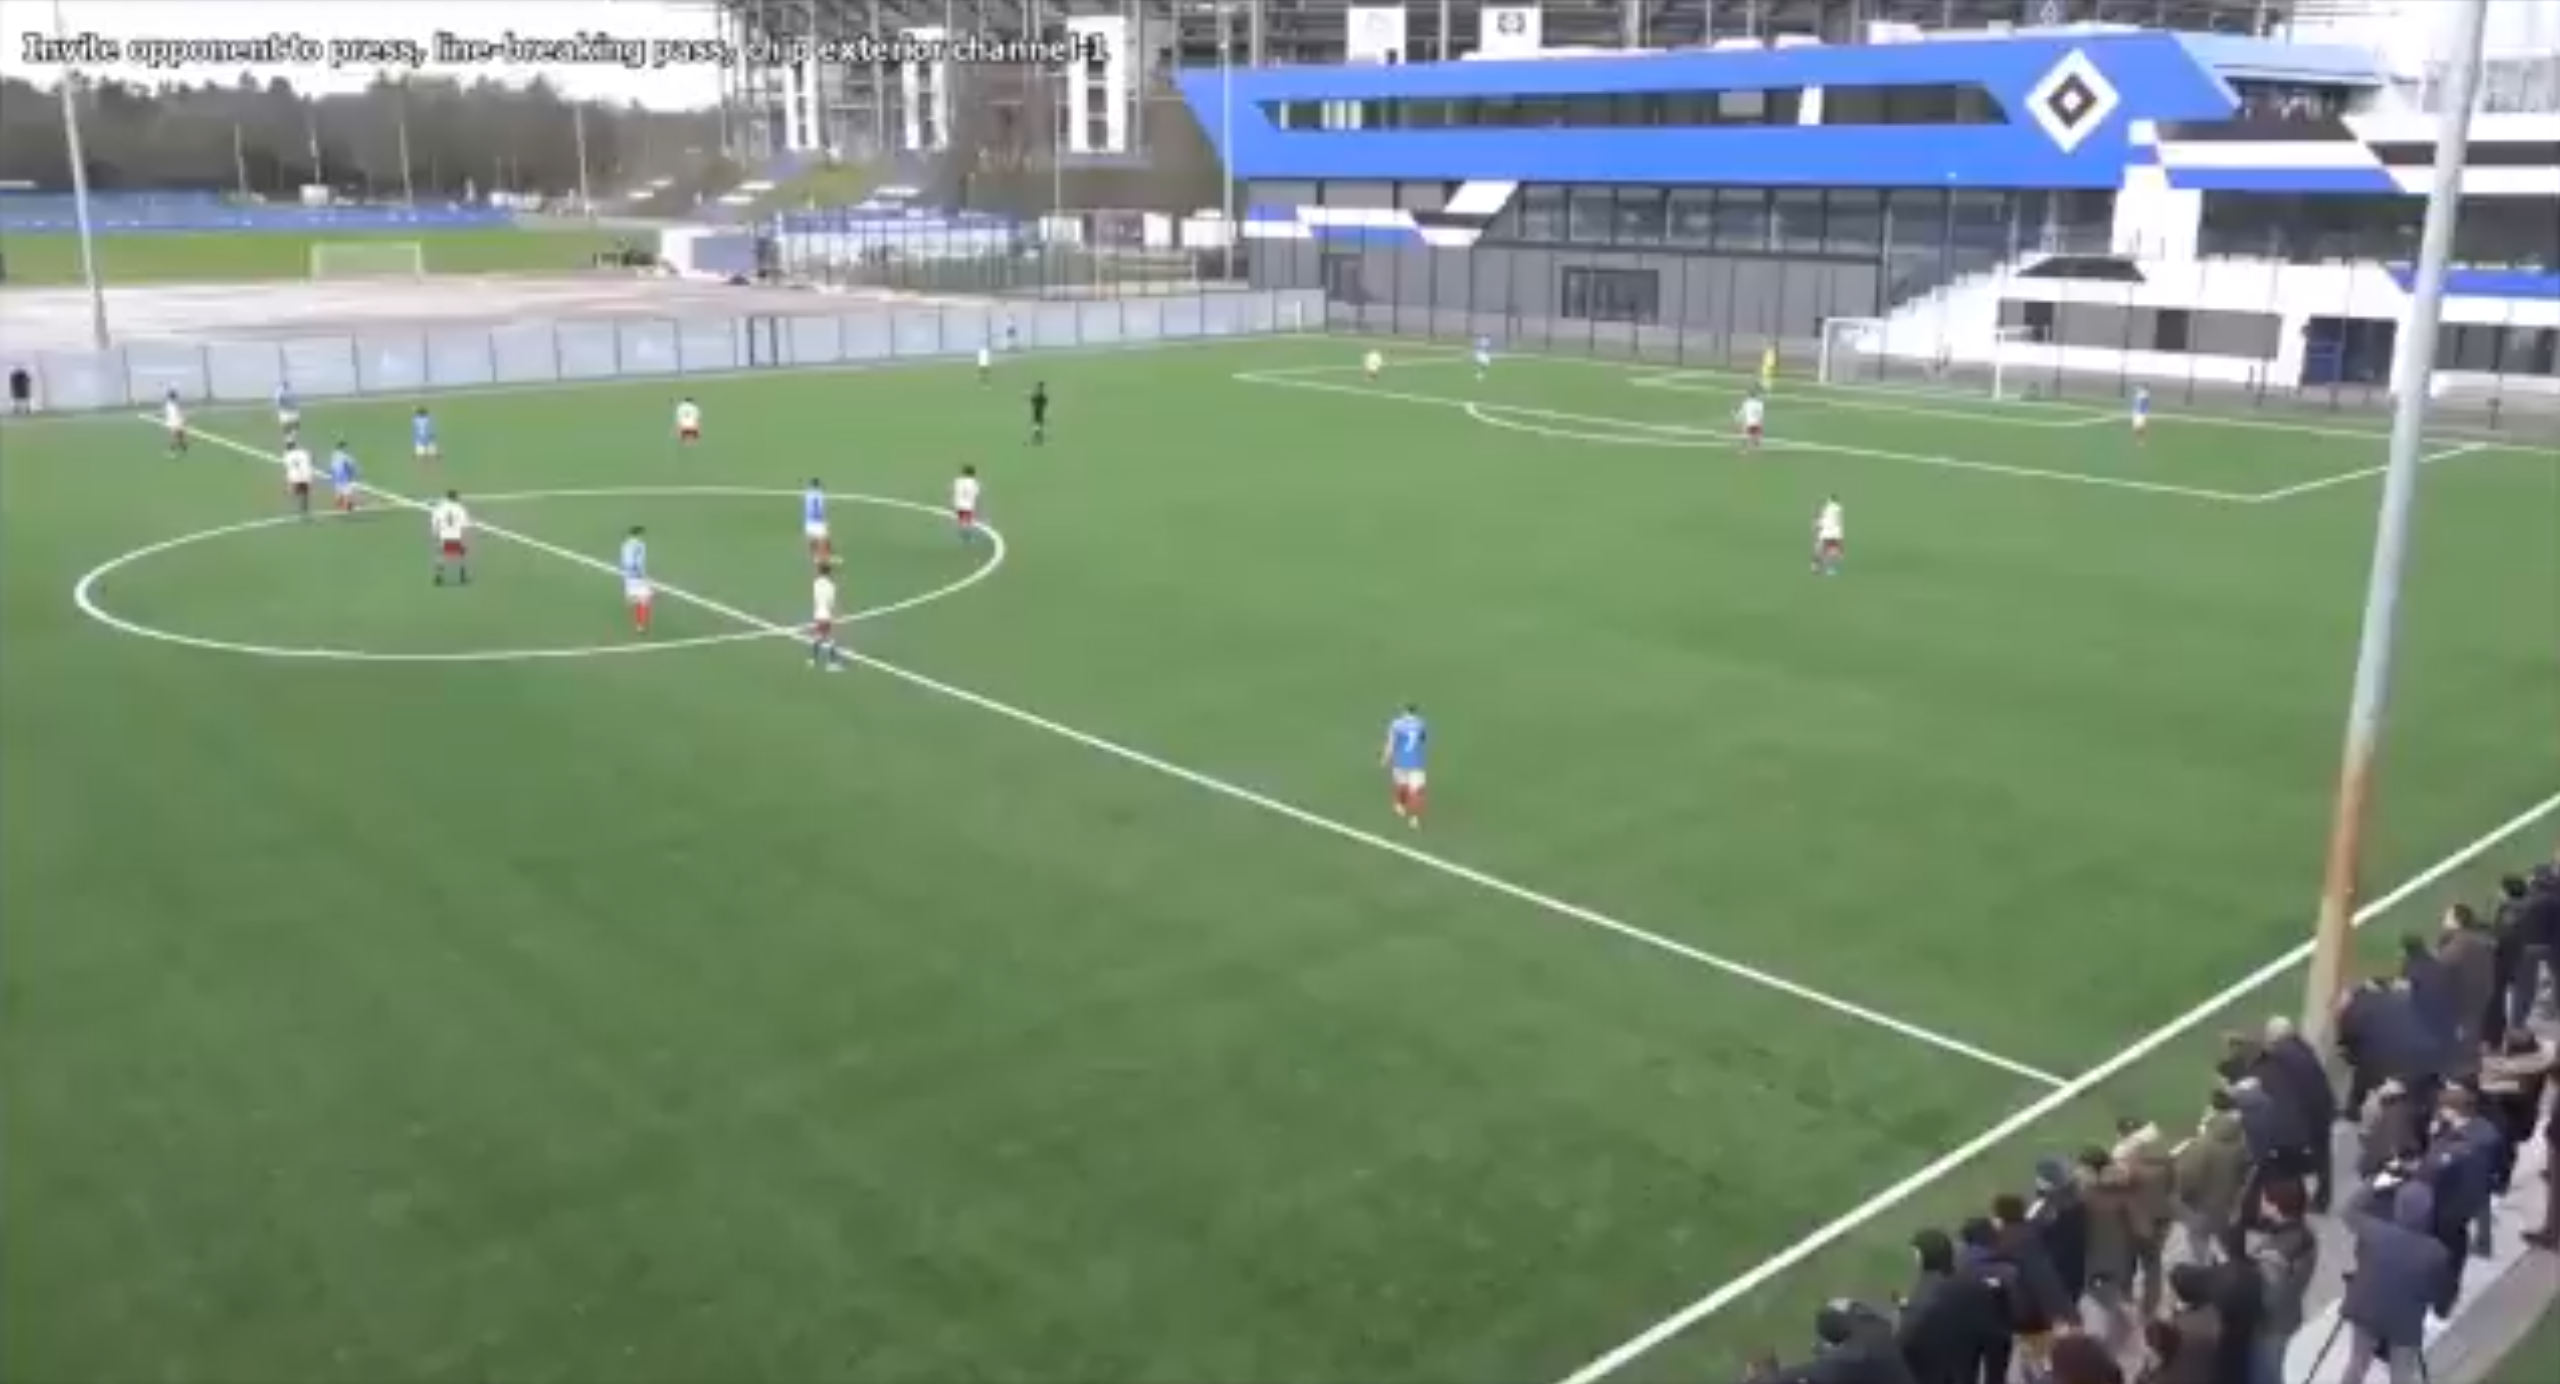 Holstein Kiel U19s: Principles in possession tactical analysis tactics